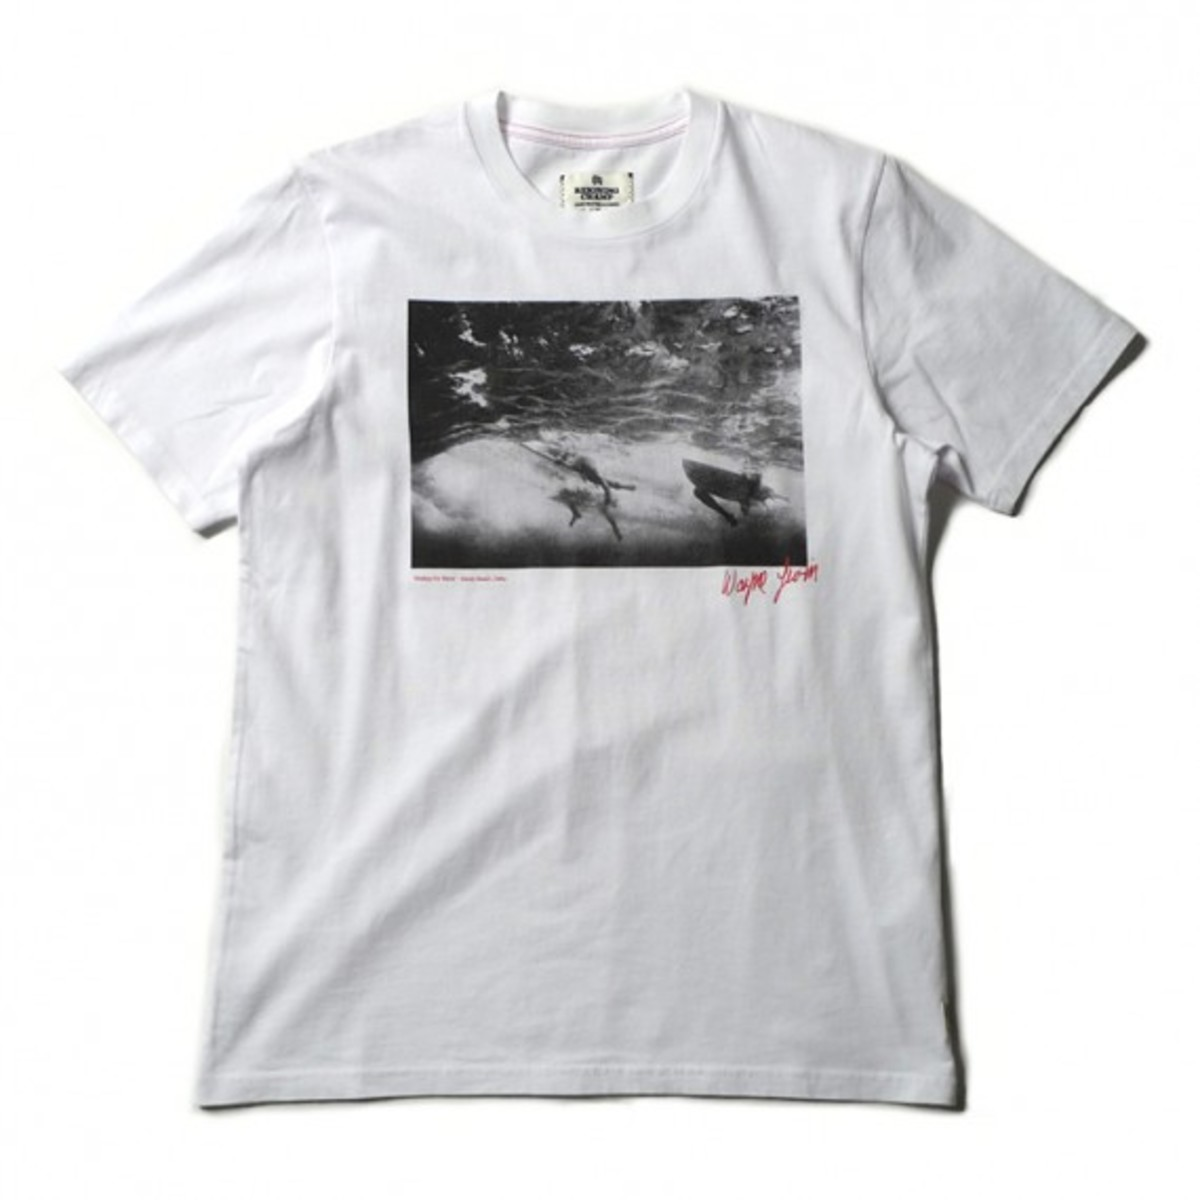 Reigning-Champ-Spring-Summer-2010-Collection-2